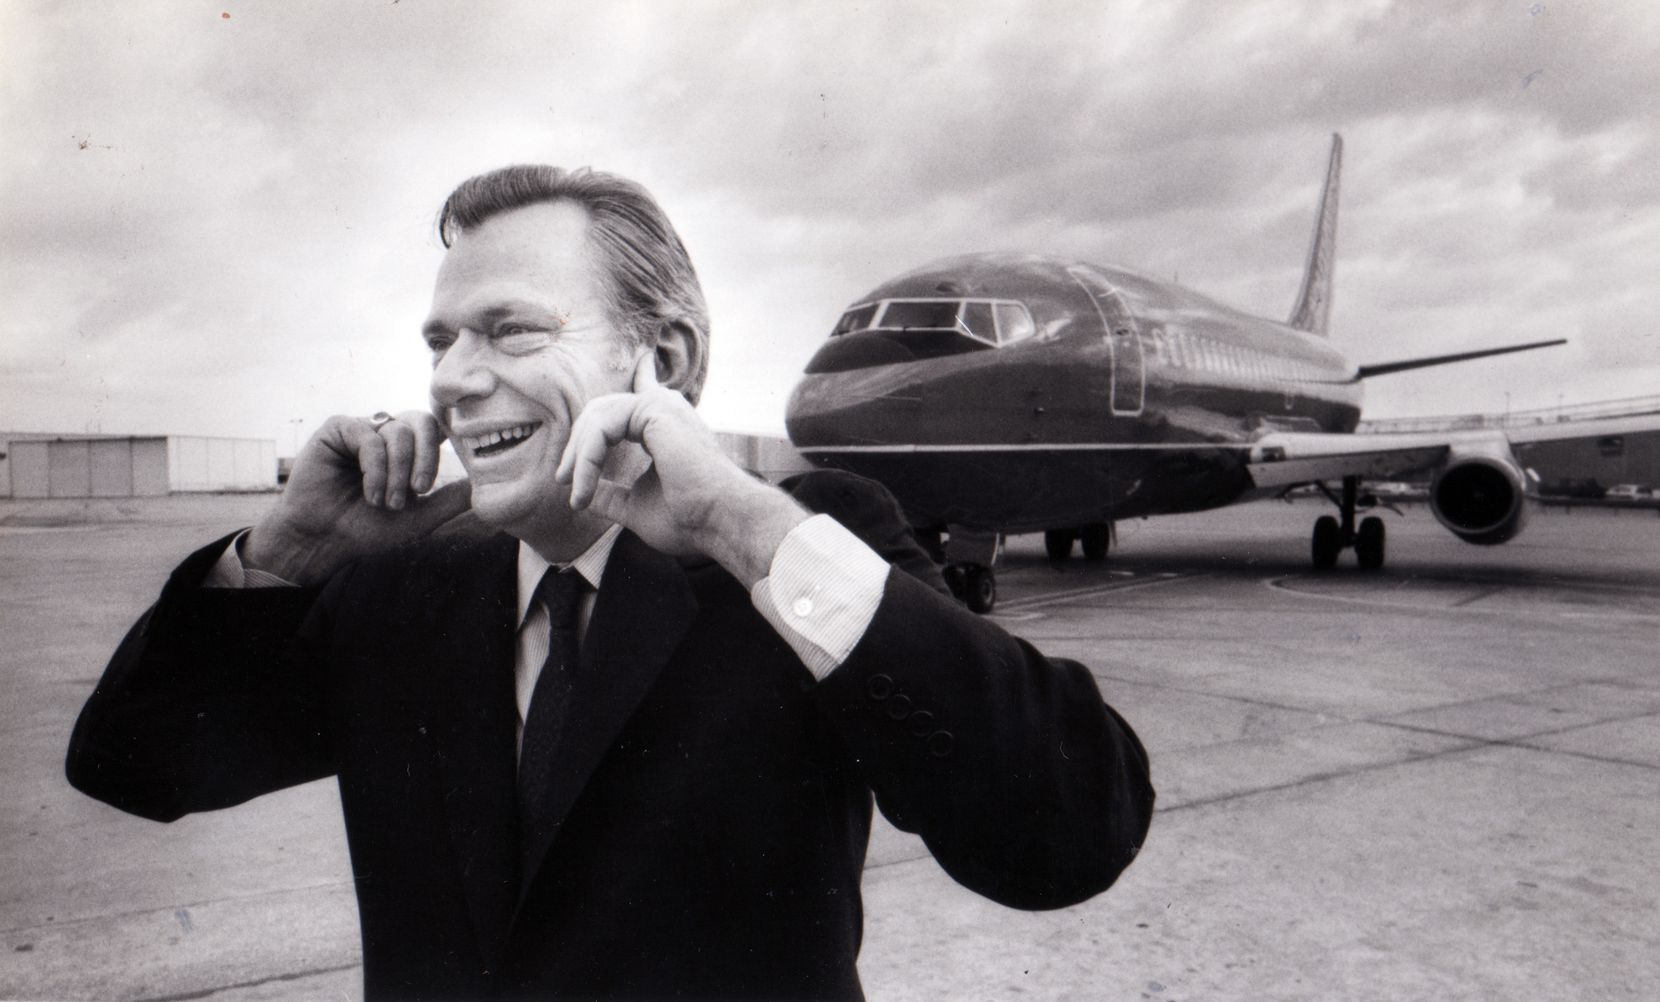 In 198, Herb Kelleher covered his ears as a Southwest Airlines jet taxied to the runway at Love Field.